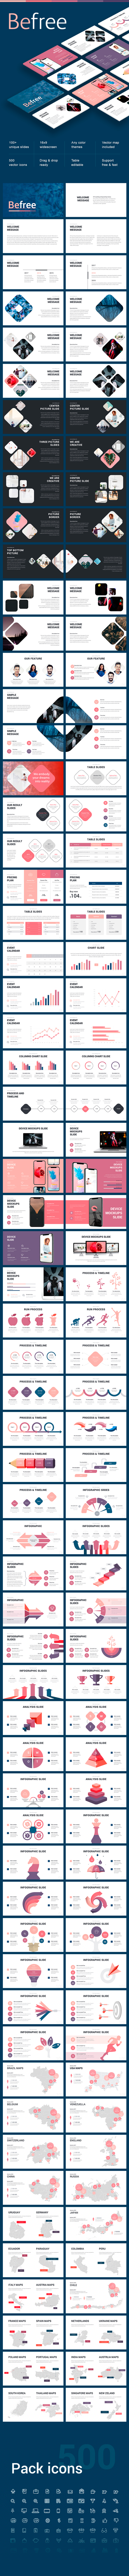 Befree Minimal PowerPoint Template - Pitch Deck PowerPoint Templates